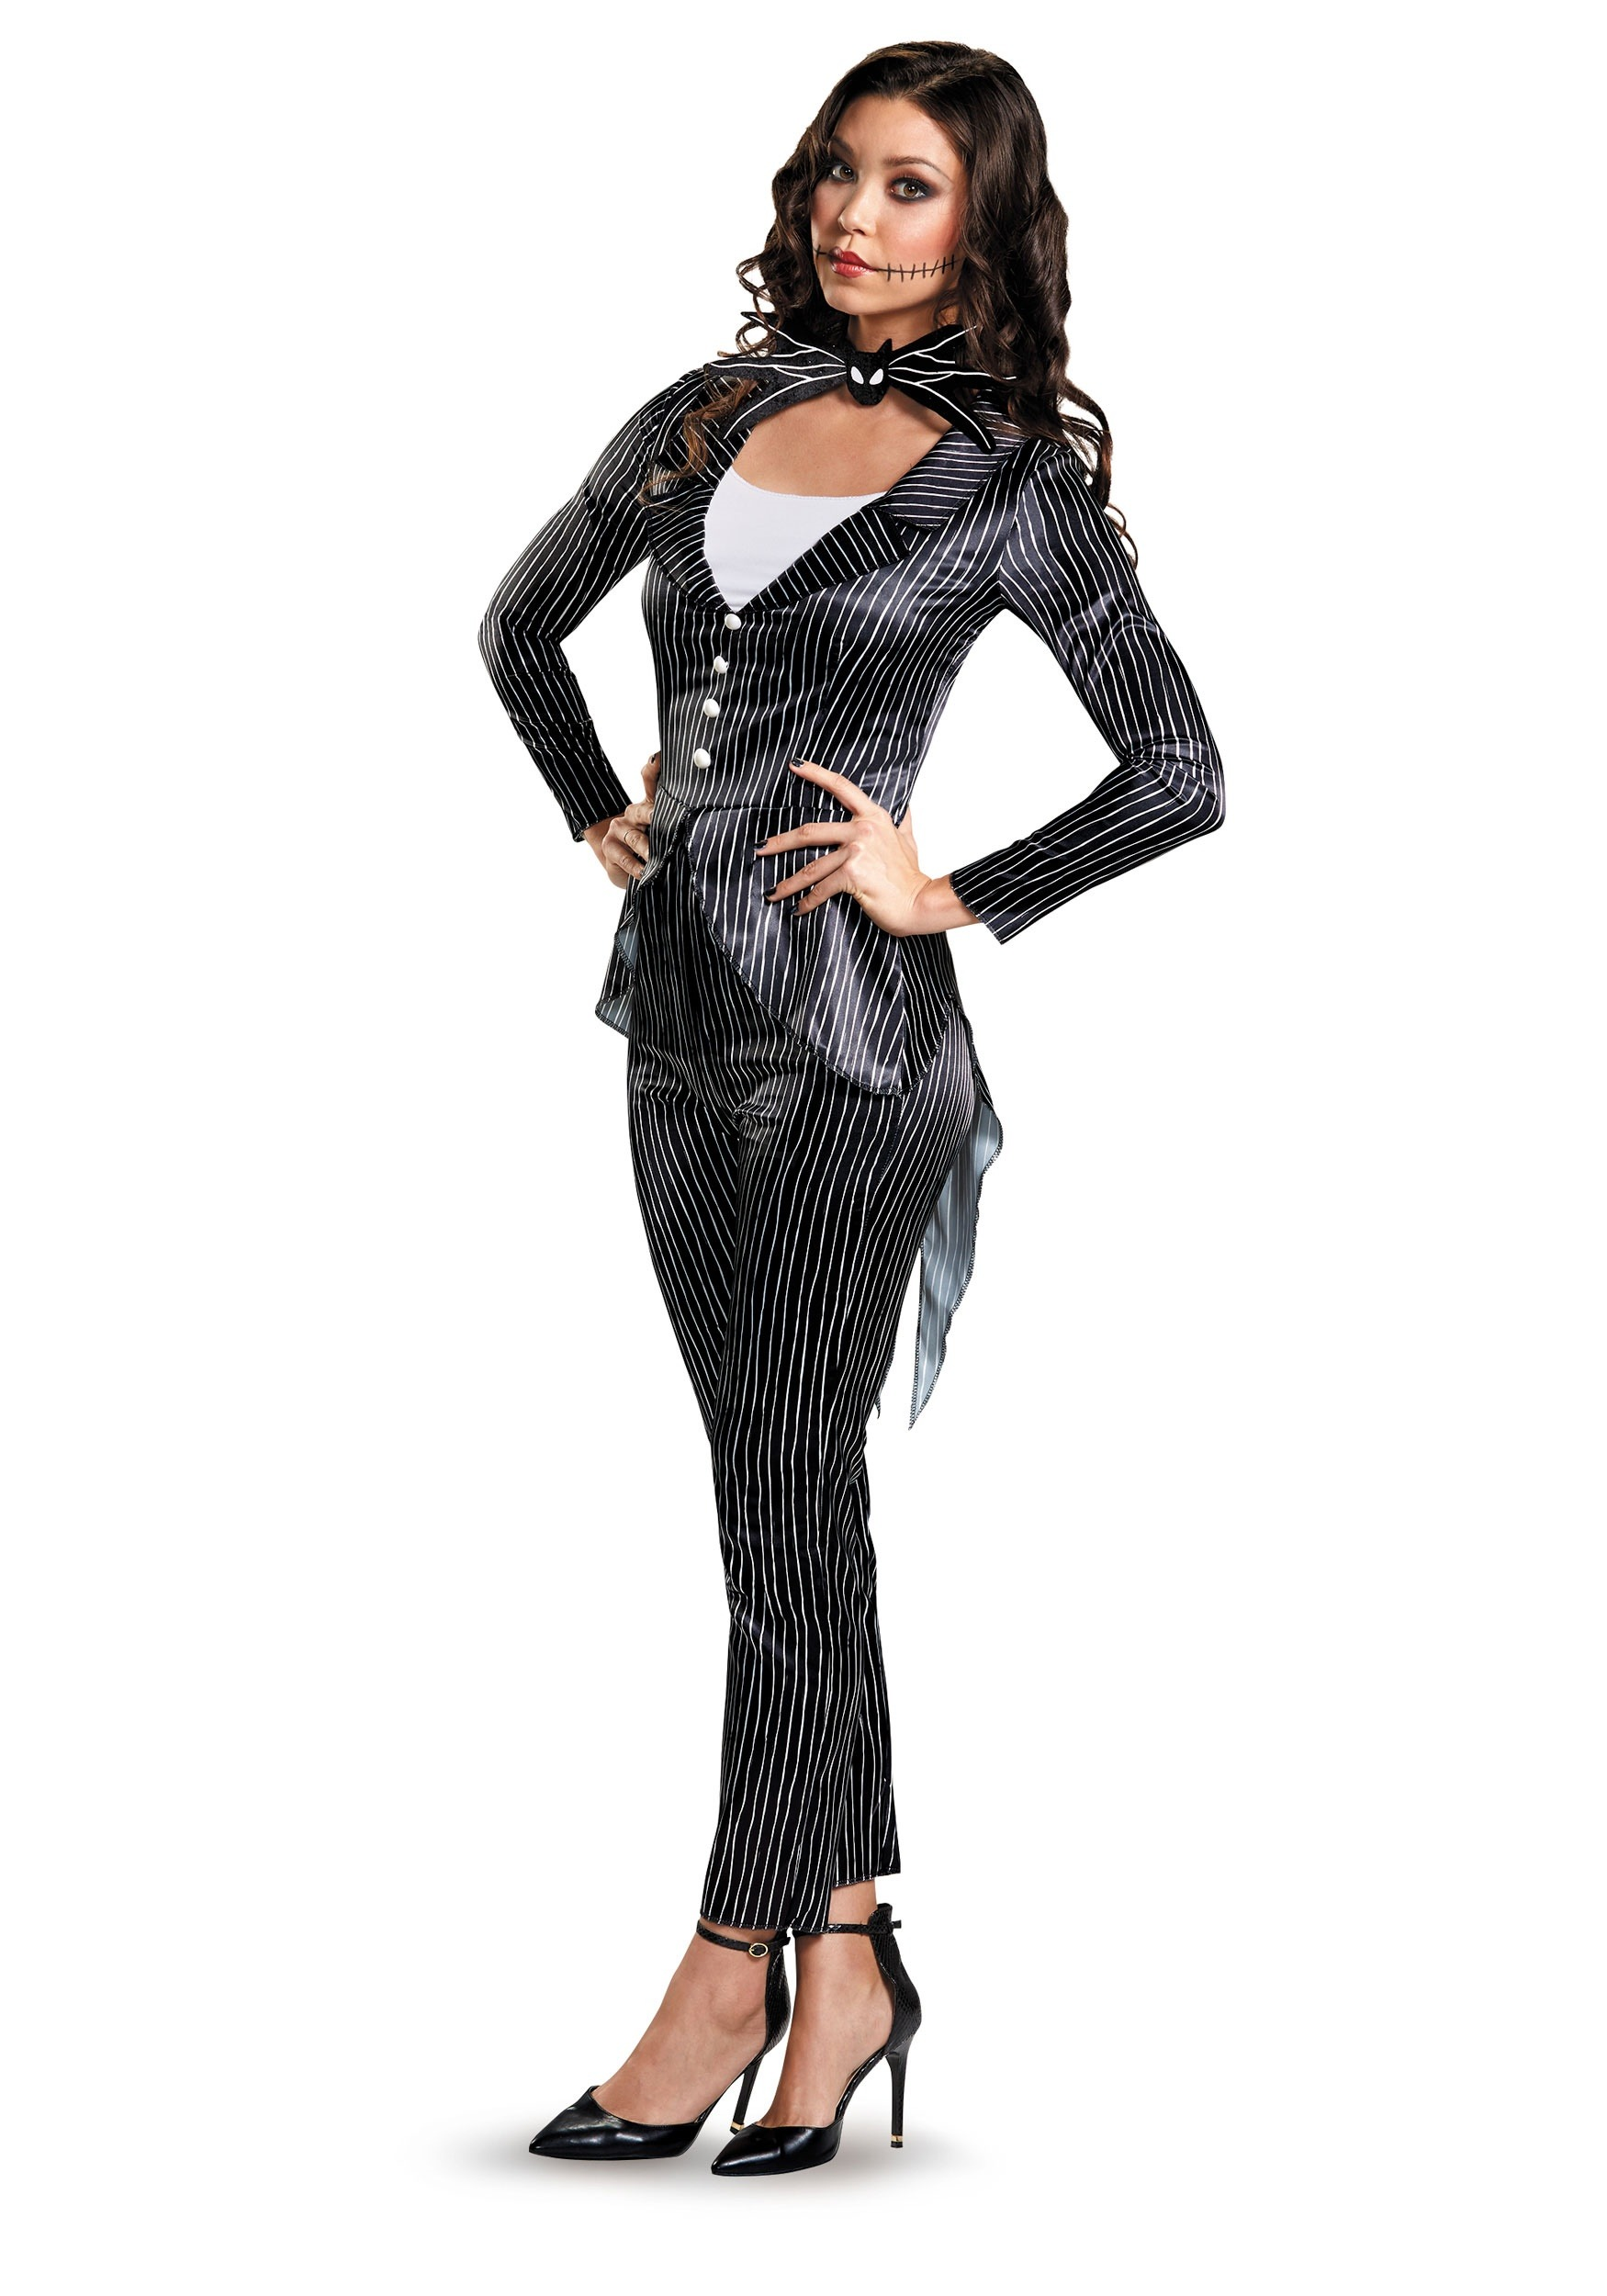 Nightmare Before Christmas Costumes - HalloweenCostumes.com